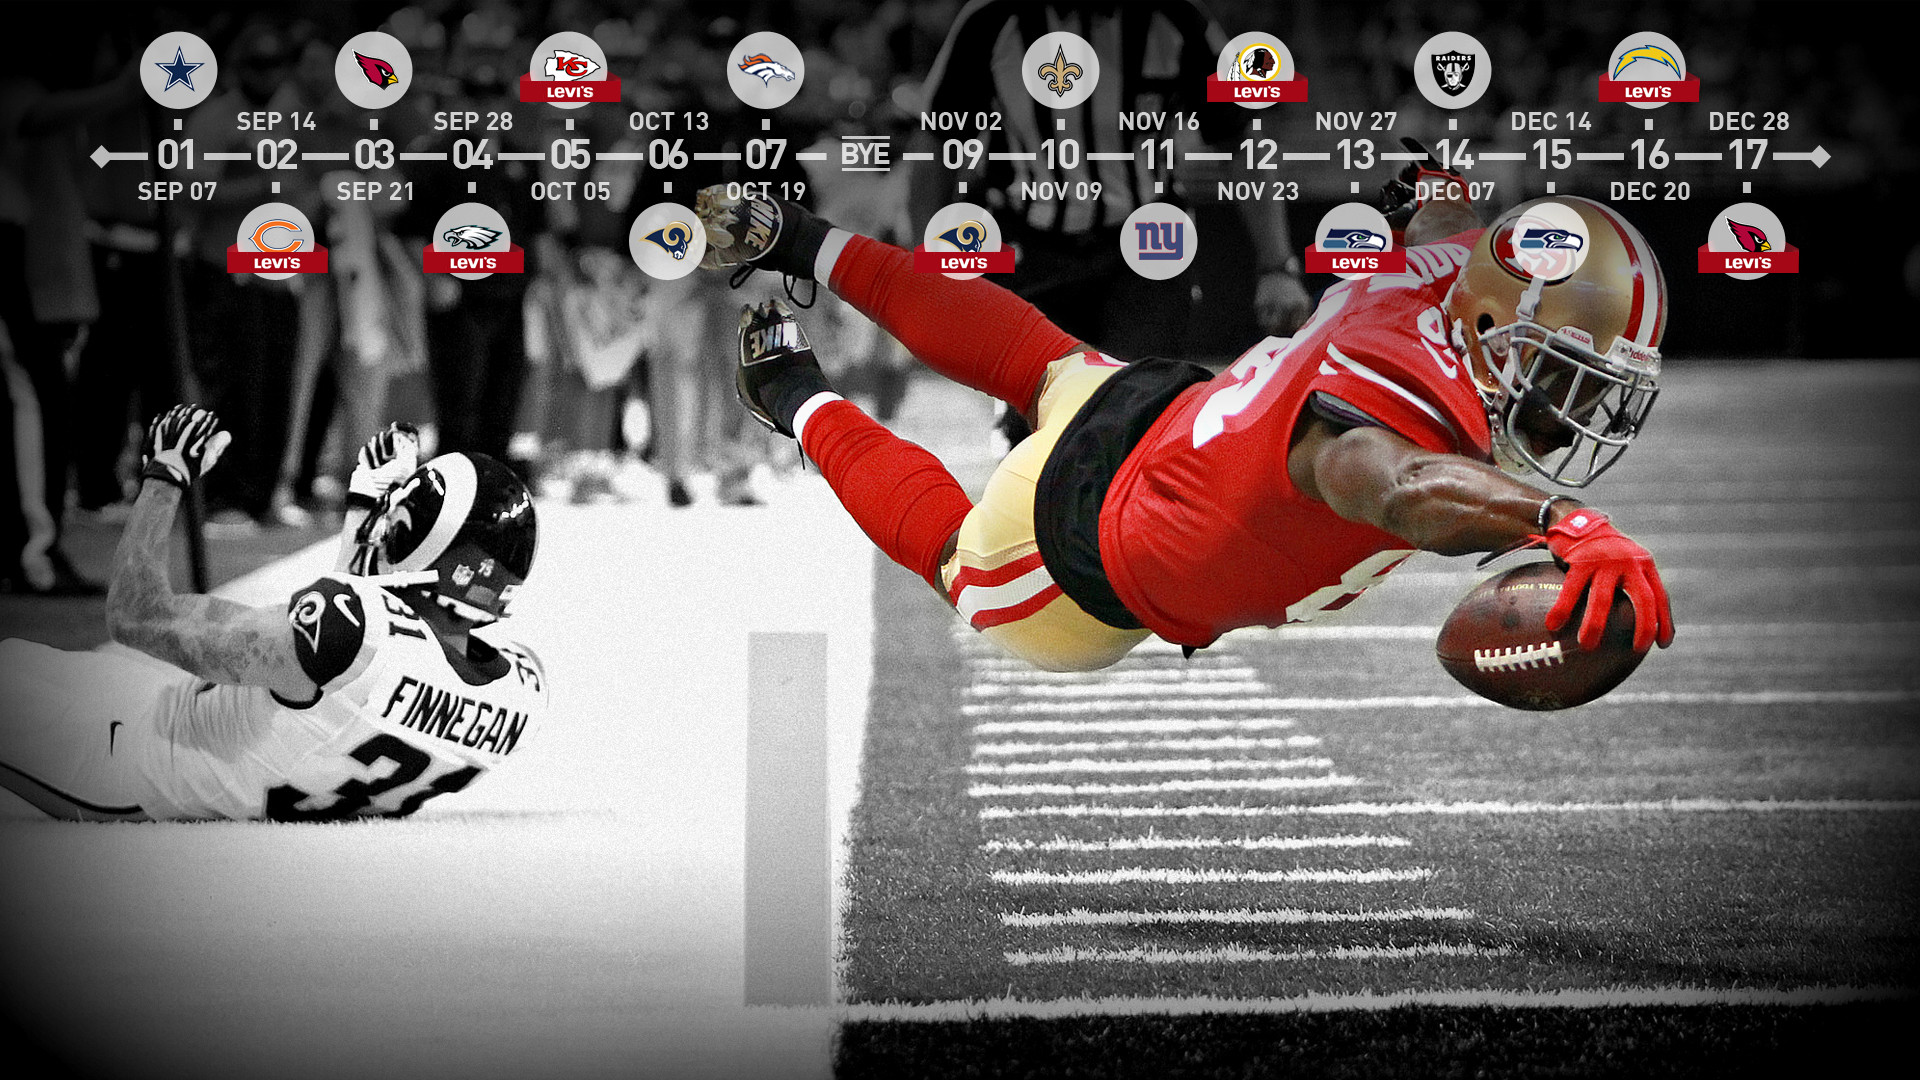 49ers Wallpapers Your Phone 1920x1080